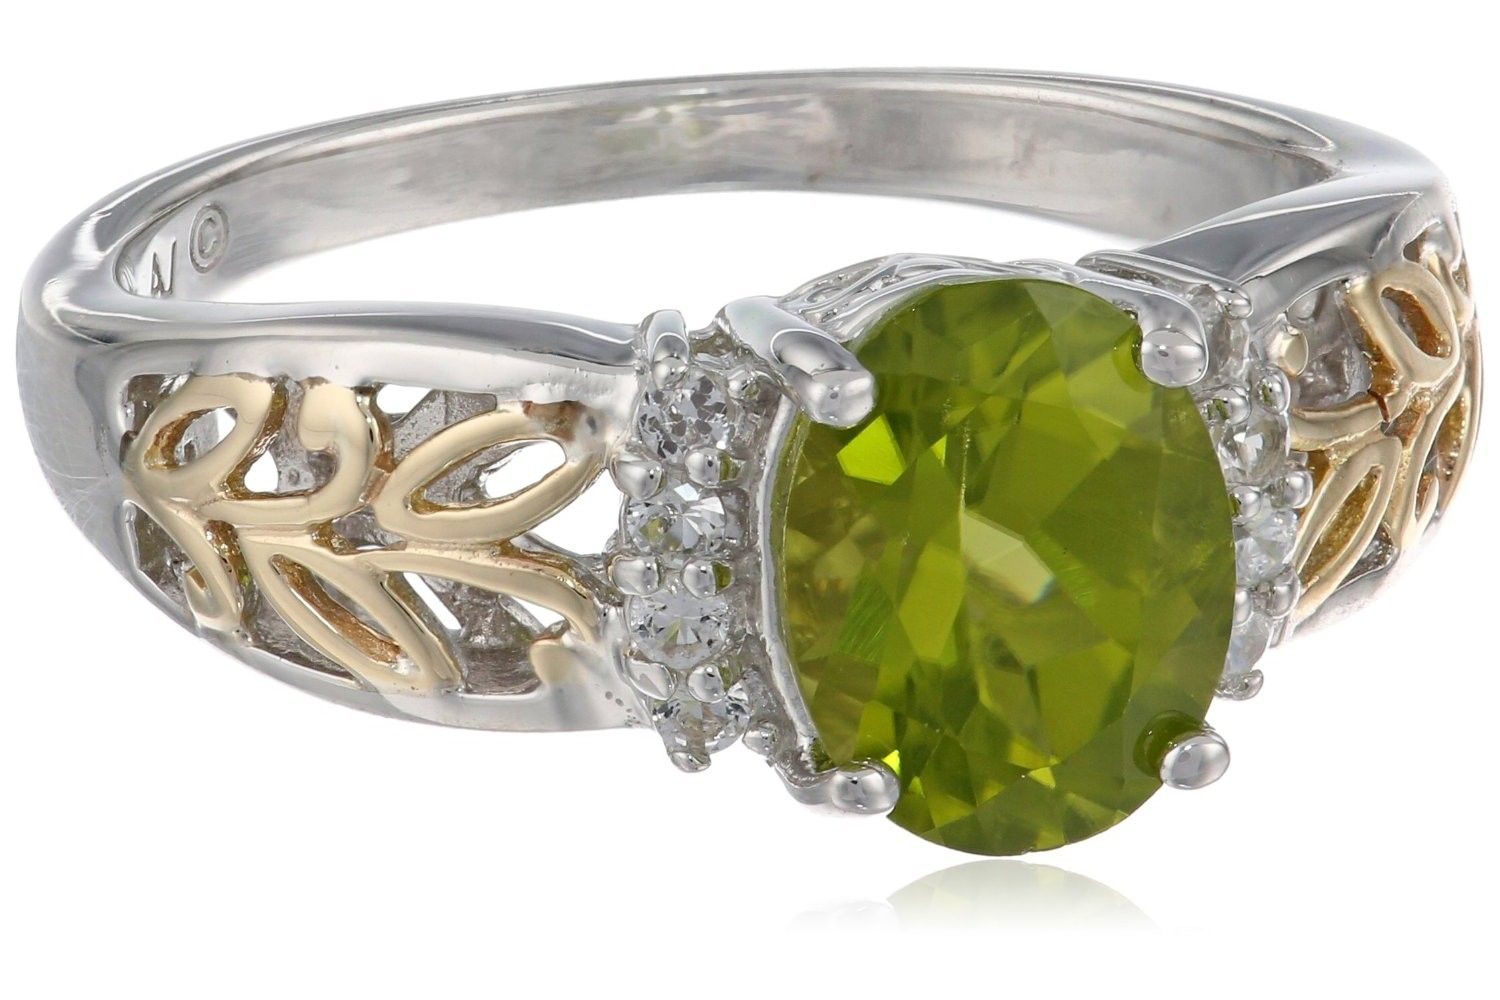 SG Sterling Silver and 14k Yellow Gold Oval Peridot and White Topaz Ring